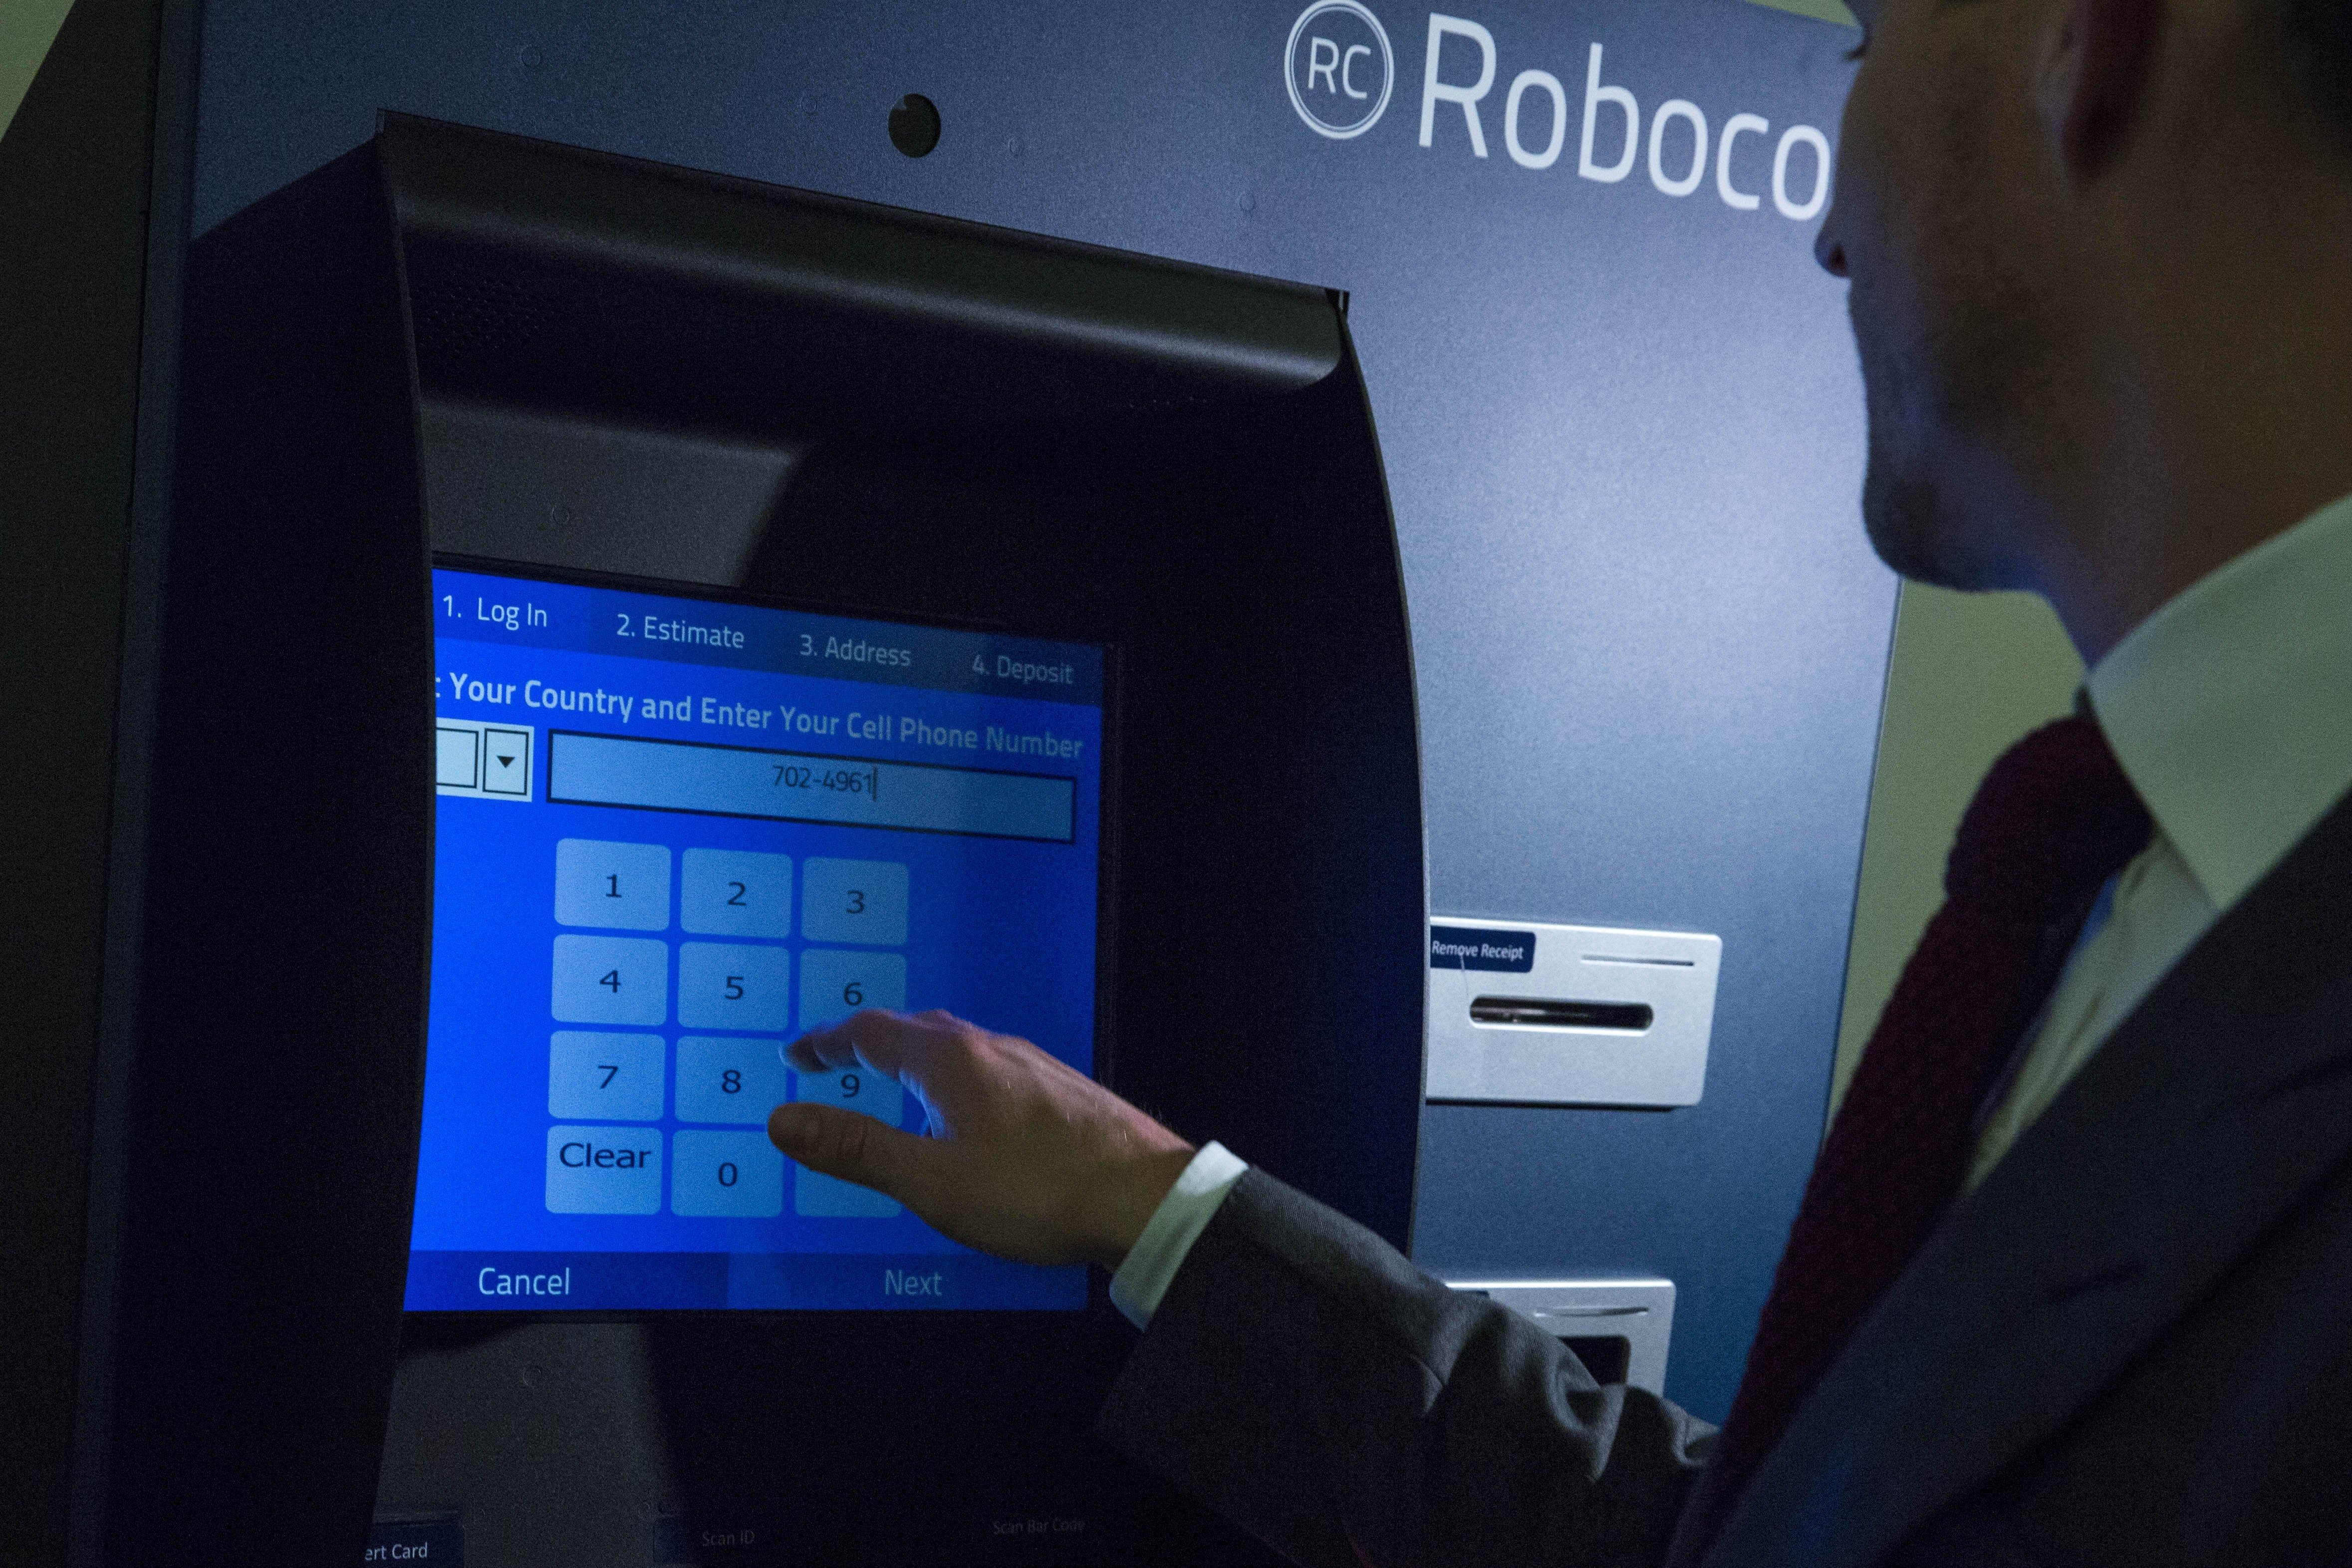 Robocoin CEO and co-founder Jordan Kelley uses the Robocoin Bitcoin ATM, during a demonstration of the ATM in the Rayburn House Office Building on Capitol Hill, April 8, 2014 in Washington.